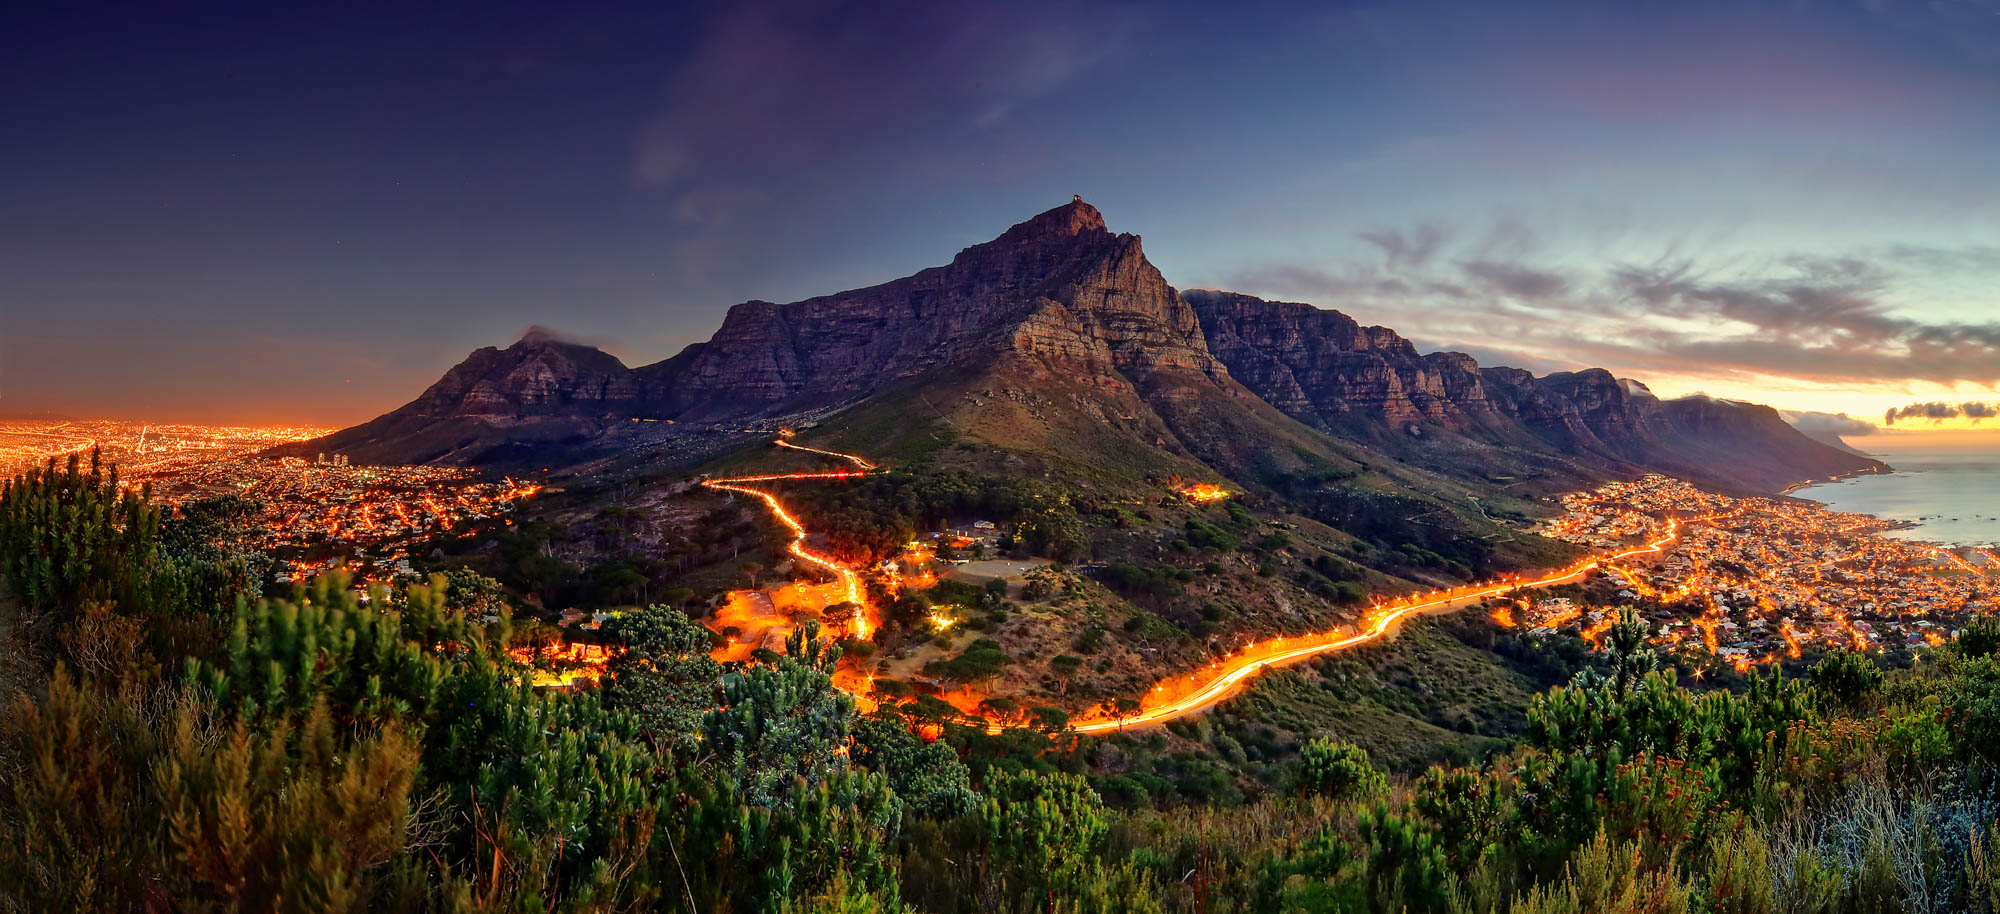 Sunset at Table Mountain, South Africa